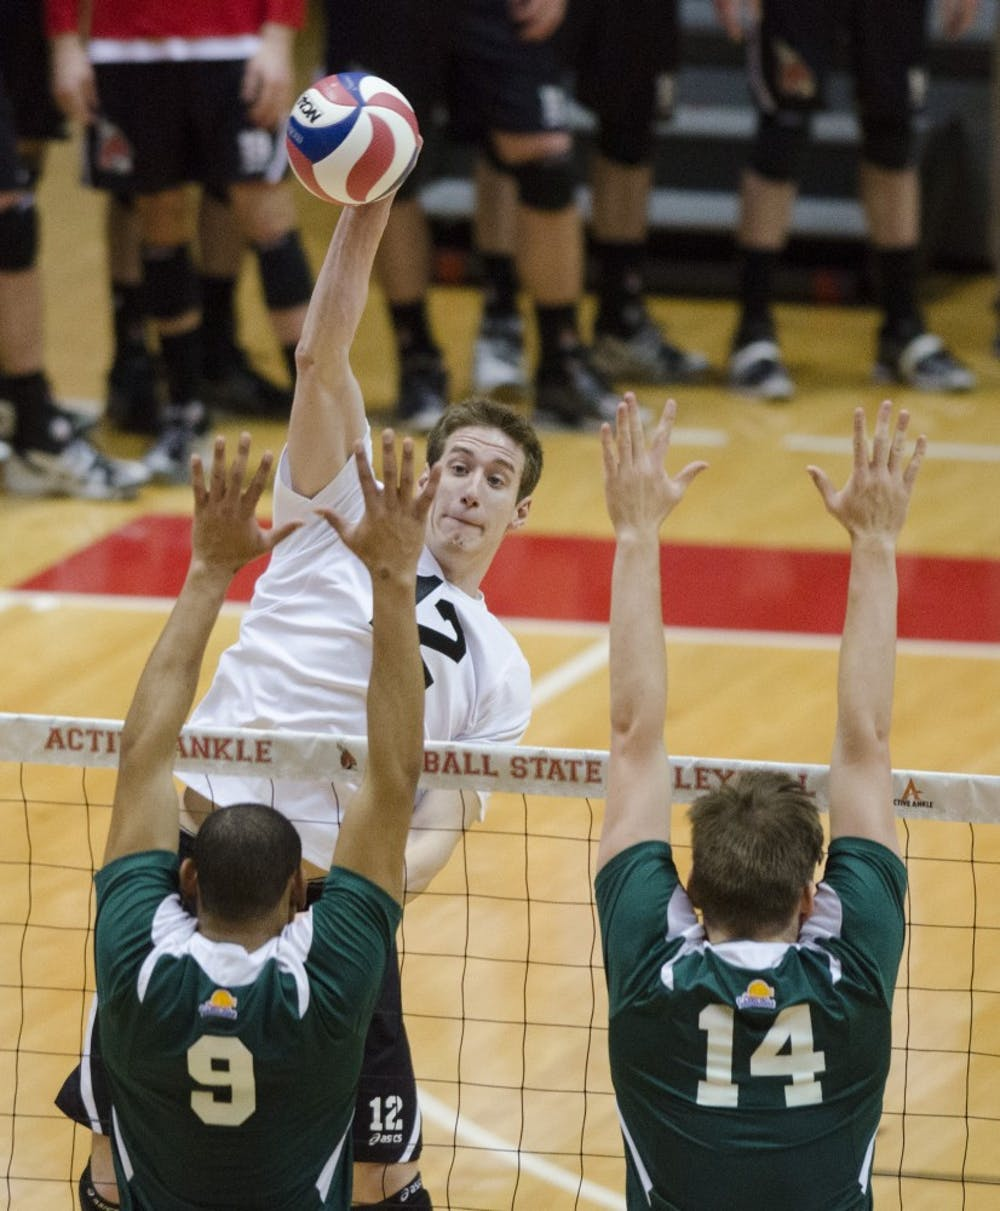 Senior outside attacker Matt Sutherland hits the ball over the net in the match against Mount Olive on March 1 at Worthen Arena. The men's volleyball team is 10-5 in their season. DN PHOTO BREANNA DAUGHERTY